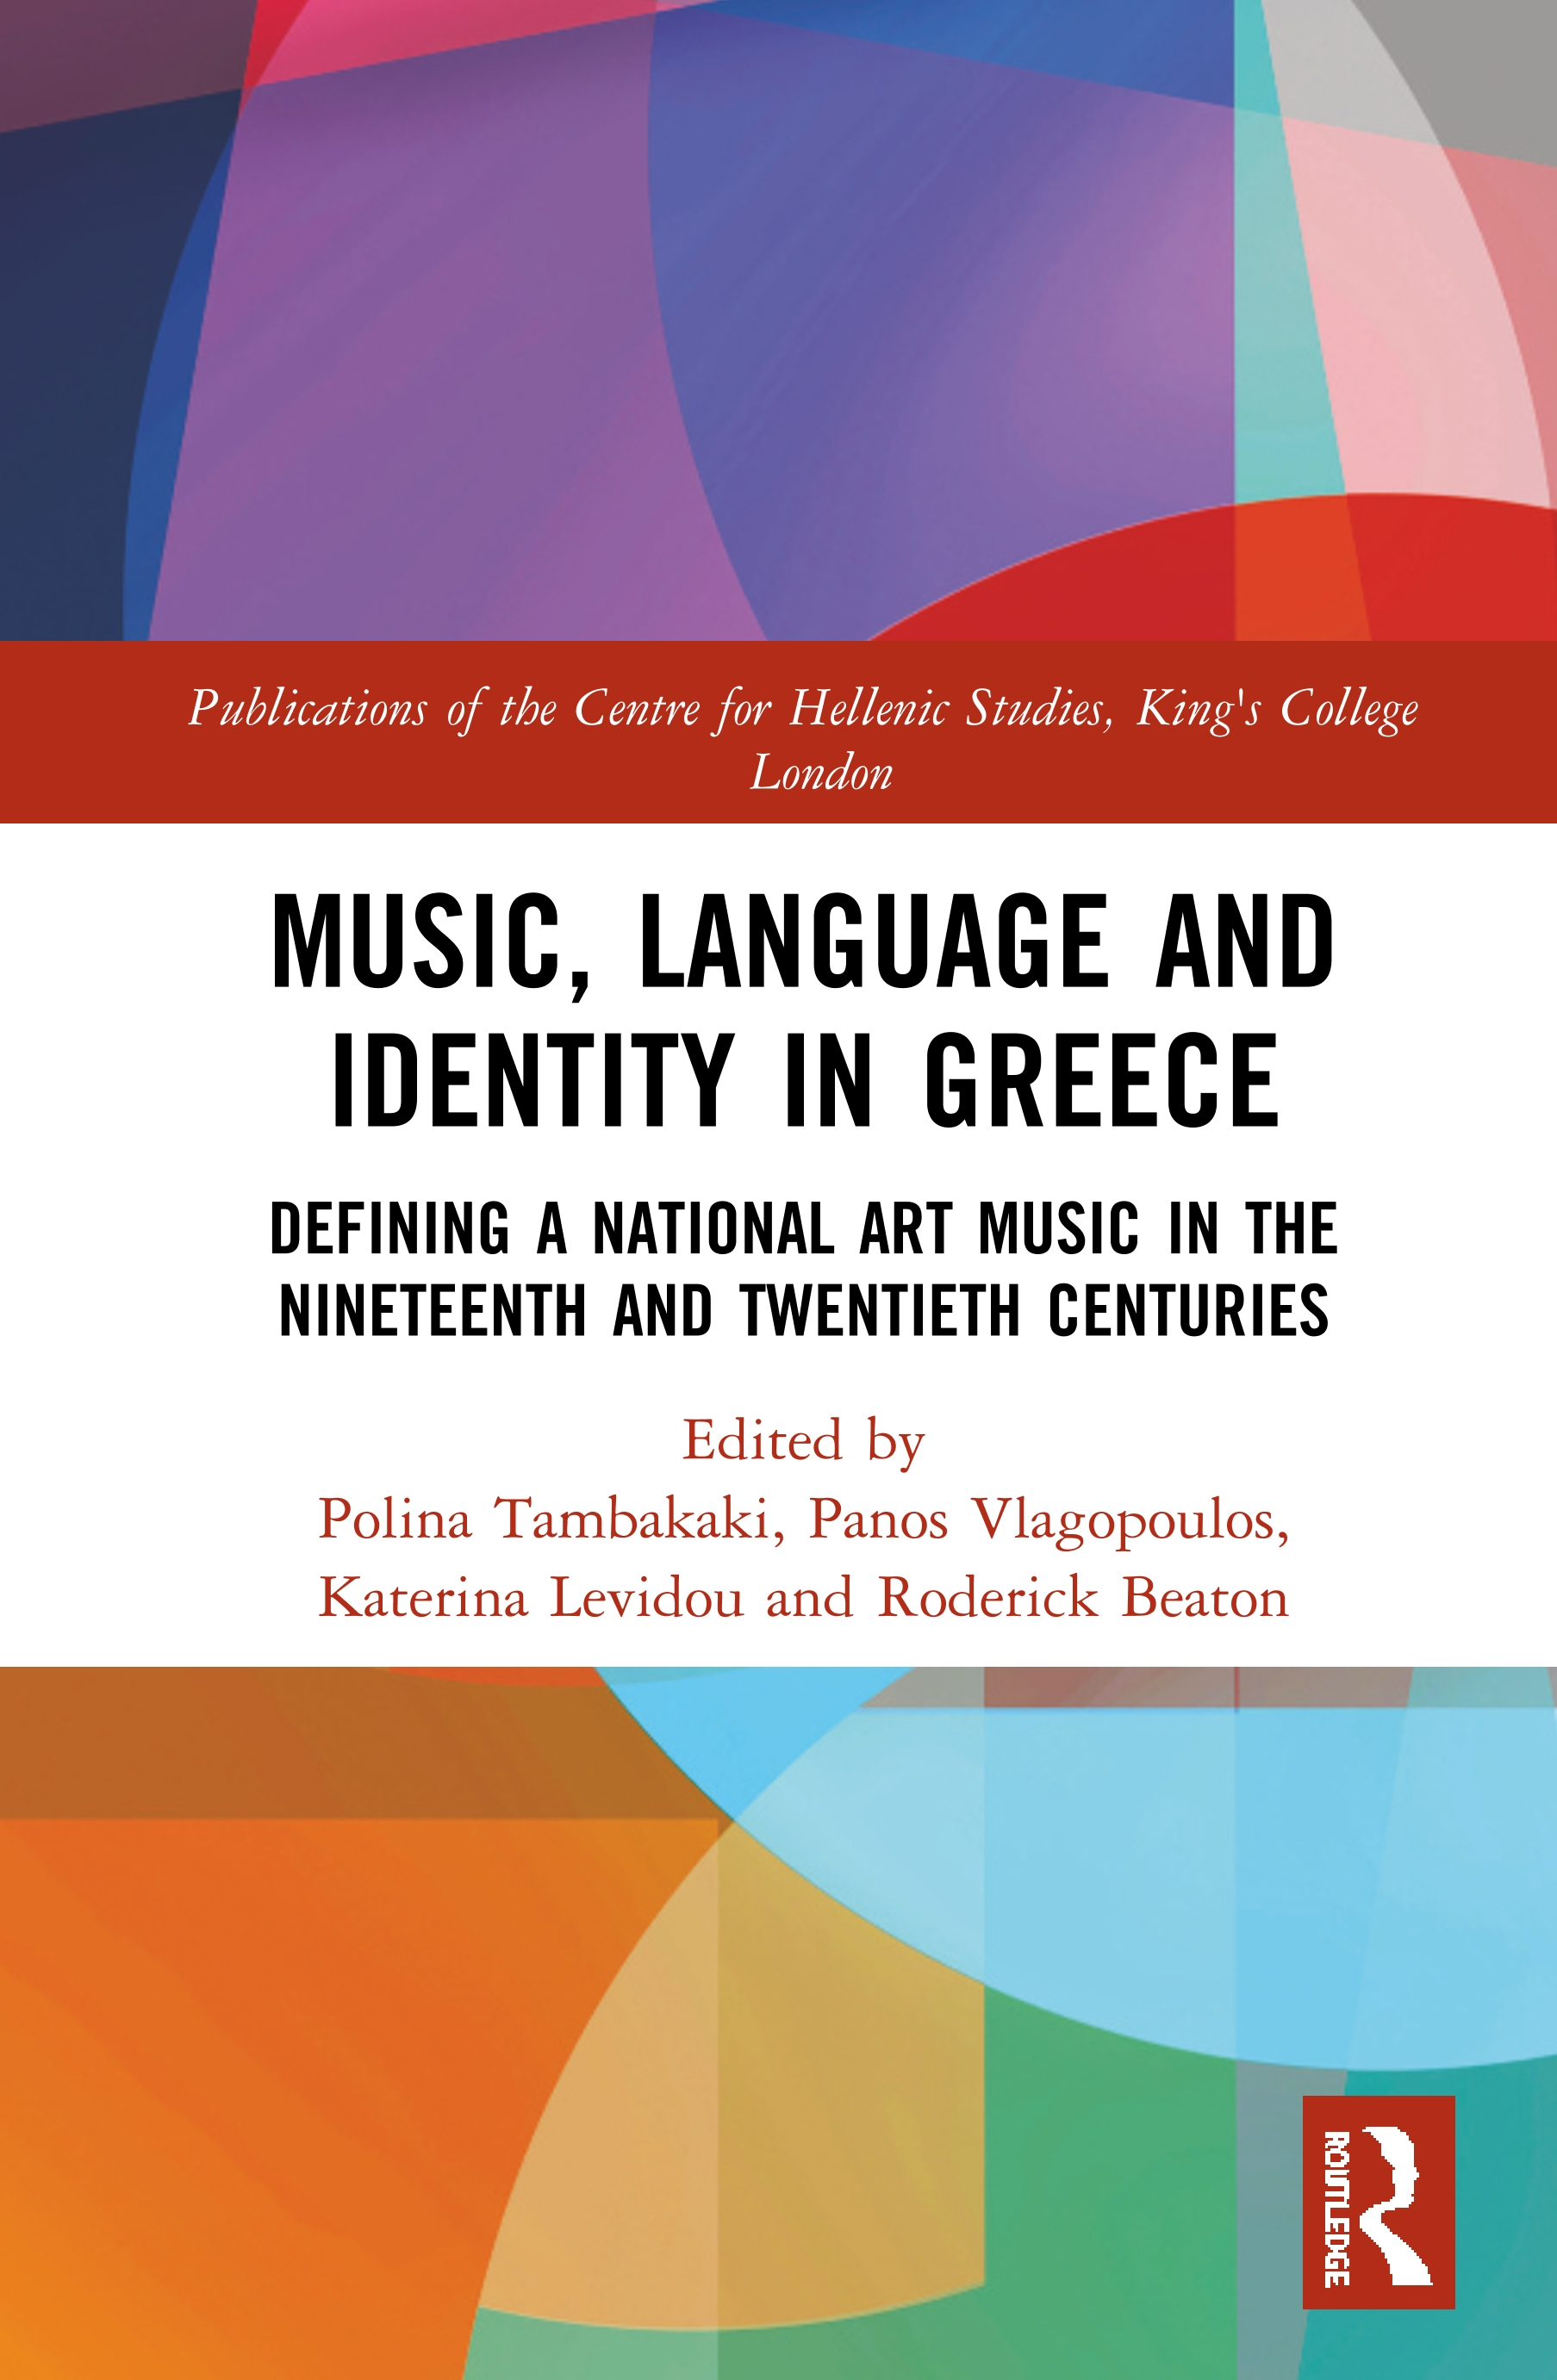 Music, Language and Identity in Greece: Defining a National Art Music in the Nineteenth and Twentieth Centuries book cover